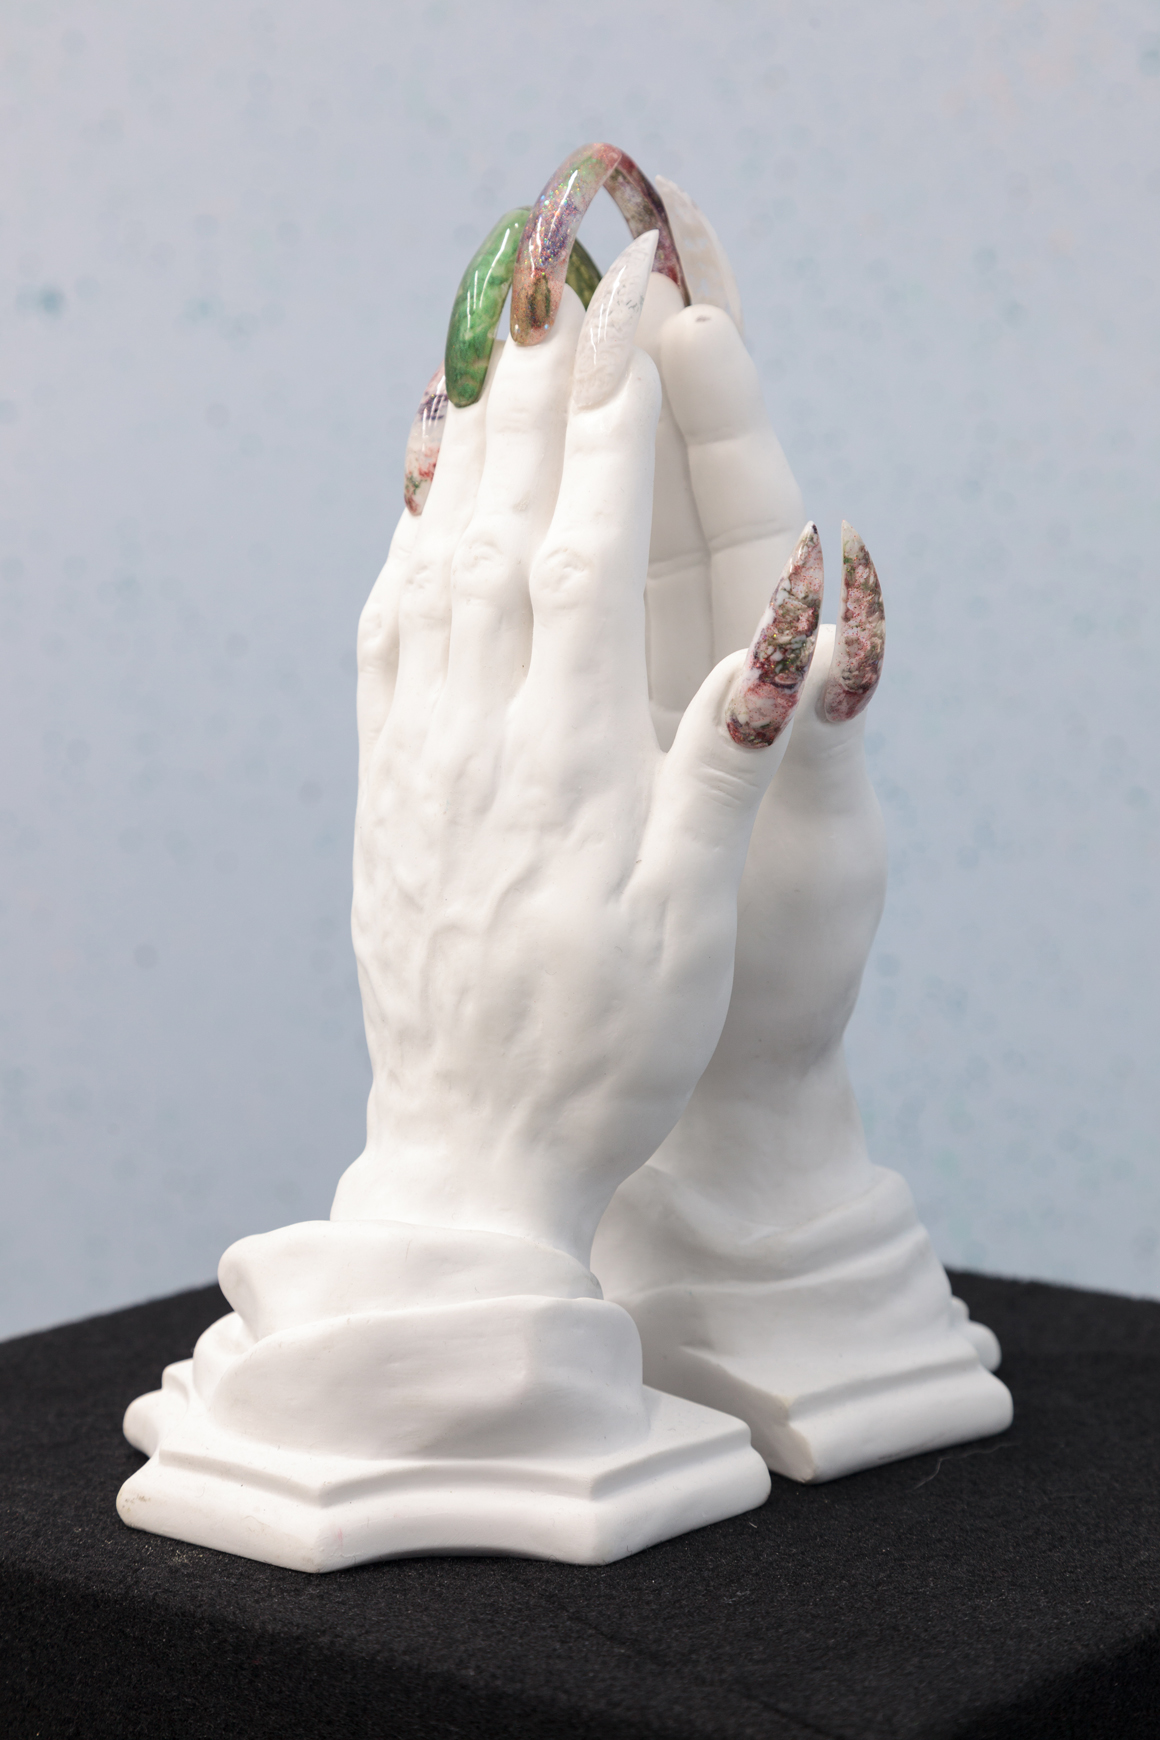 <p><em>Praying Nail Tips (Marble)</em><span class='media'>plaster, bejeweled, acrylic nails</span>10 x 7.5 x 5 in  (25.4 x 19.1 x 12.7 cm)<br>2017<br><a class='inquire' href='mailto:info@gildargallery.com?subject=Artwork Inquiry DOBE0036&body=I am interested in finding out more about Praying Nail Tips (Marble) by Dmitri Obergfell'>Inquire</a></p>